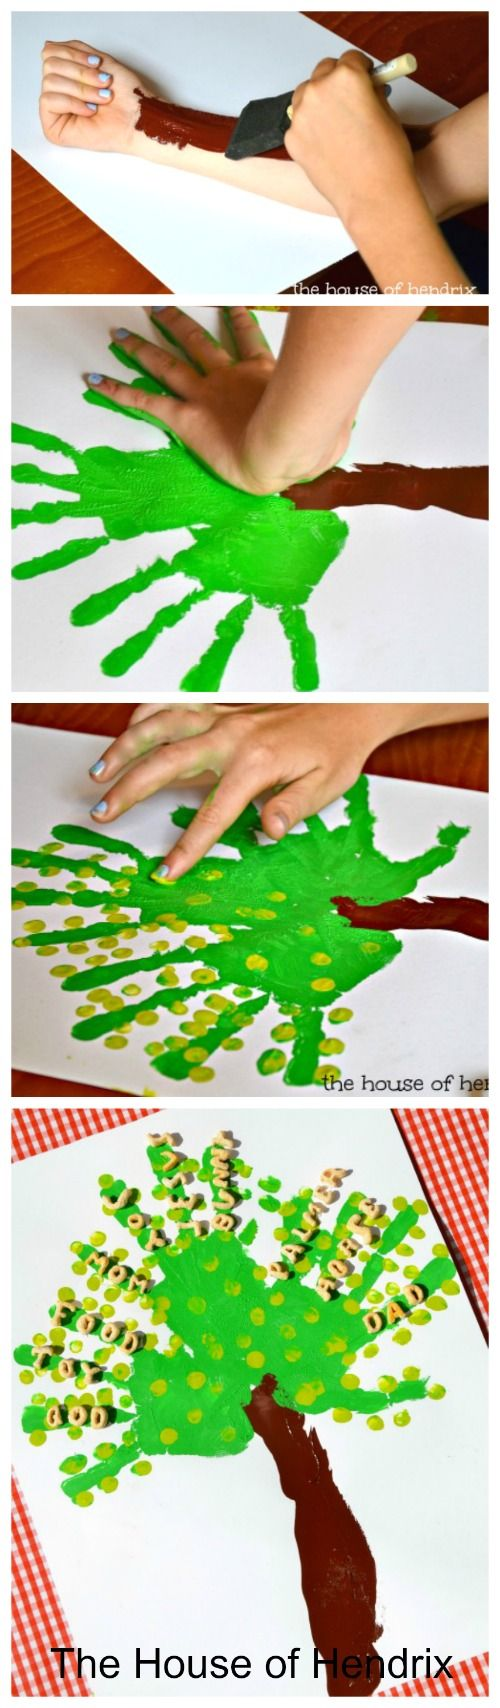 A Tree of Gratitude - Includes a character-building lesson for each step. I love when a craft strengthens not just fine motor skills but the heart as well.